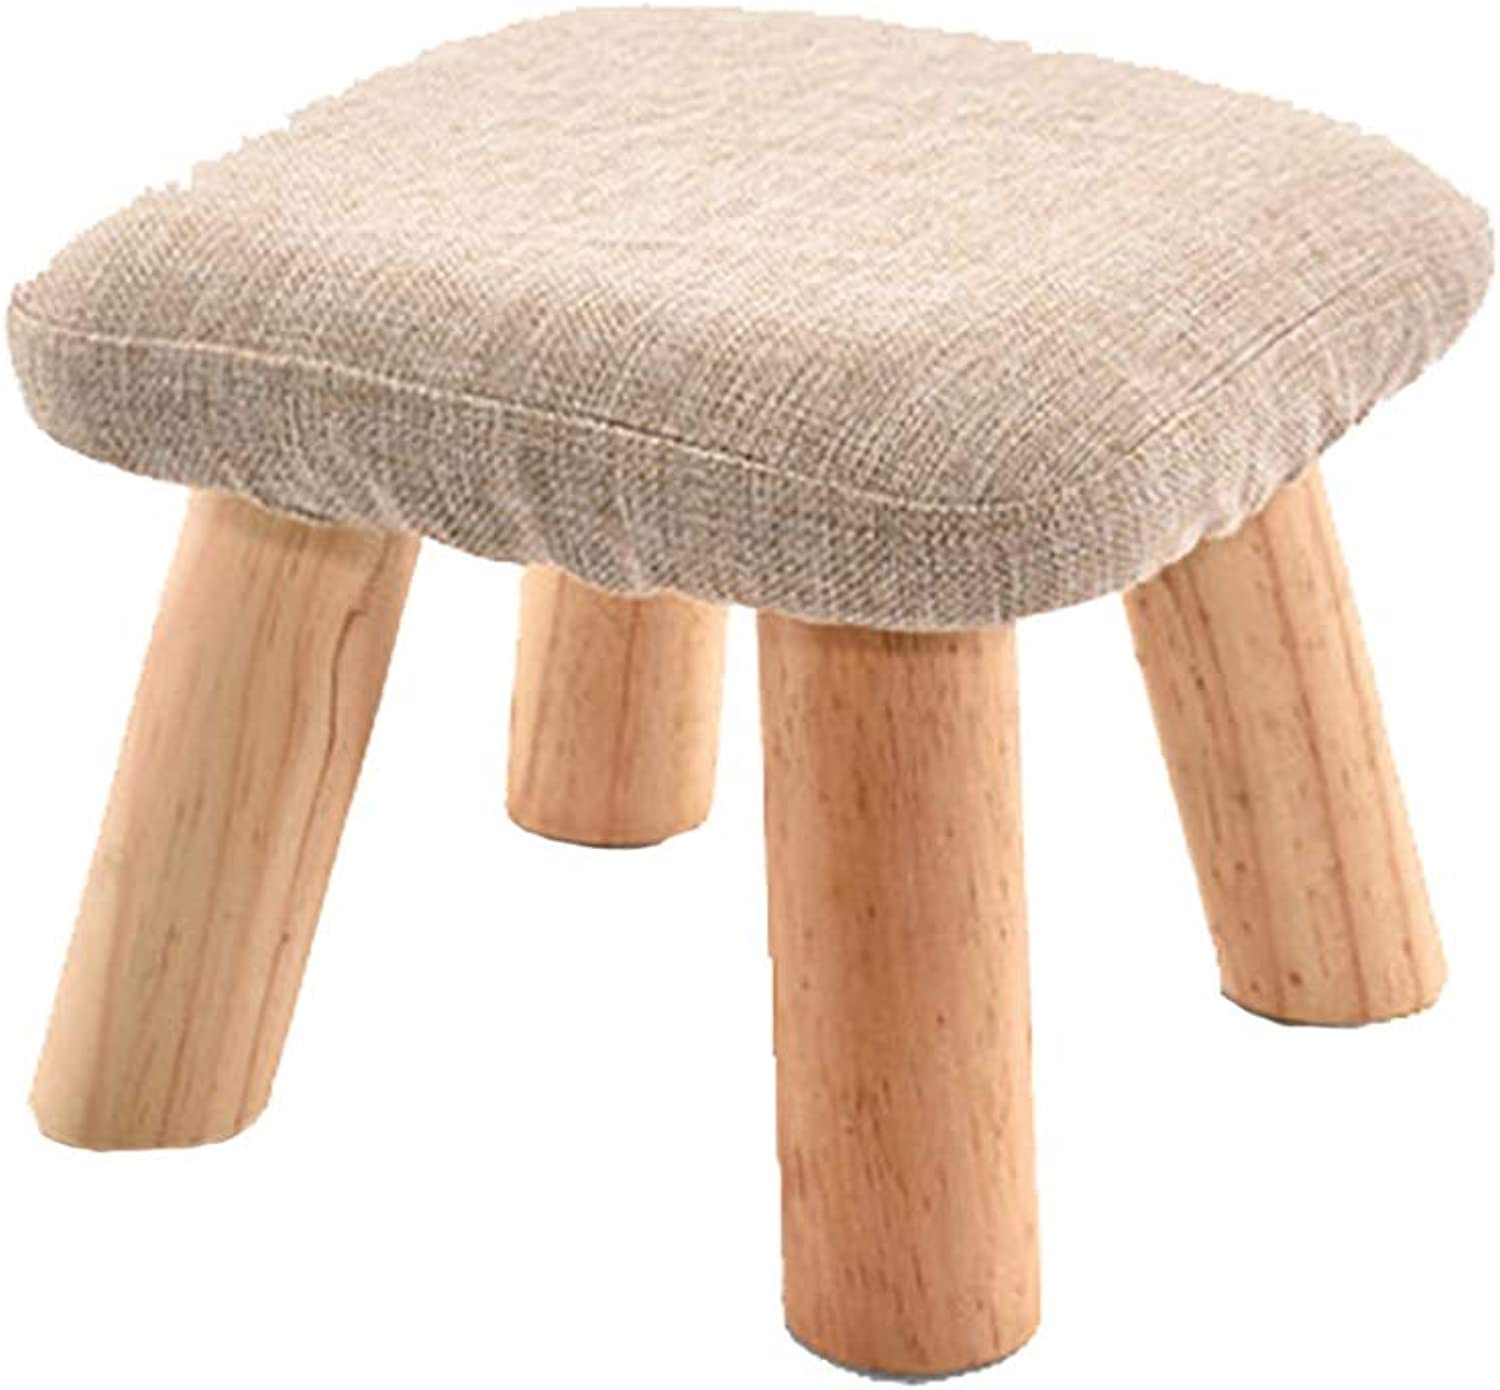 ZHILIAN& Square Solid Wood Stool Simple Fashion Home Multi-Function shoes Bench Sofa Bench Footstool 28x28x21cm (color   A)